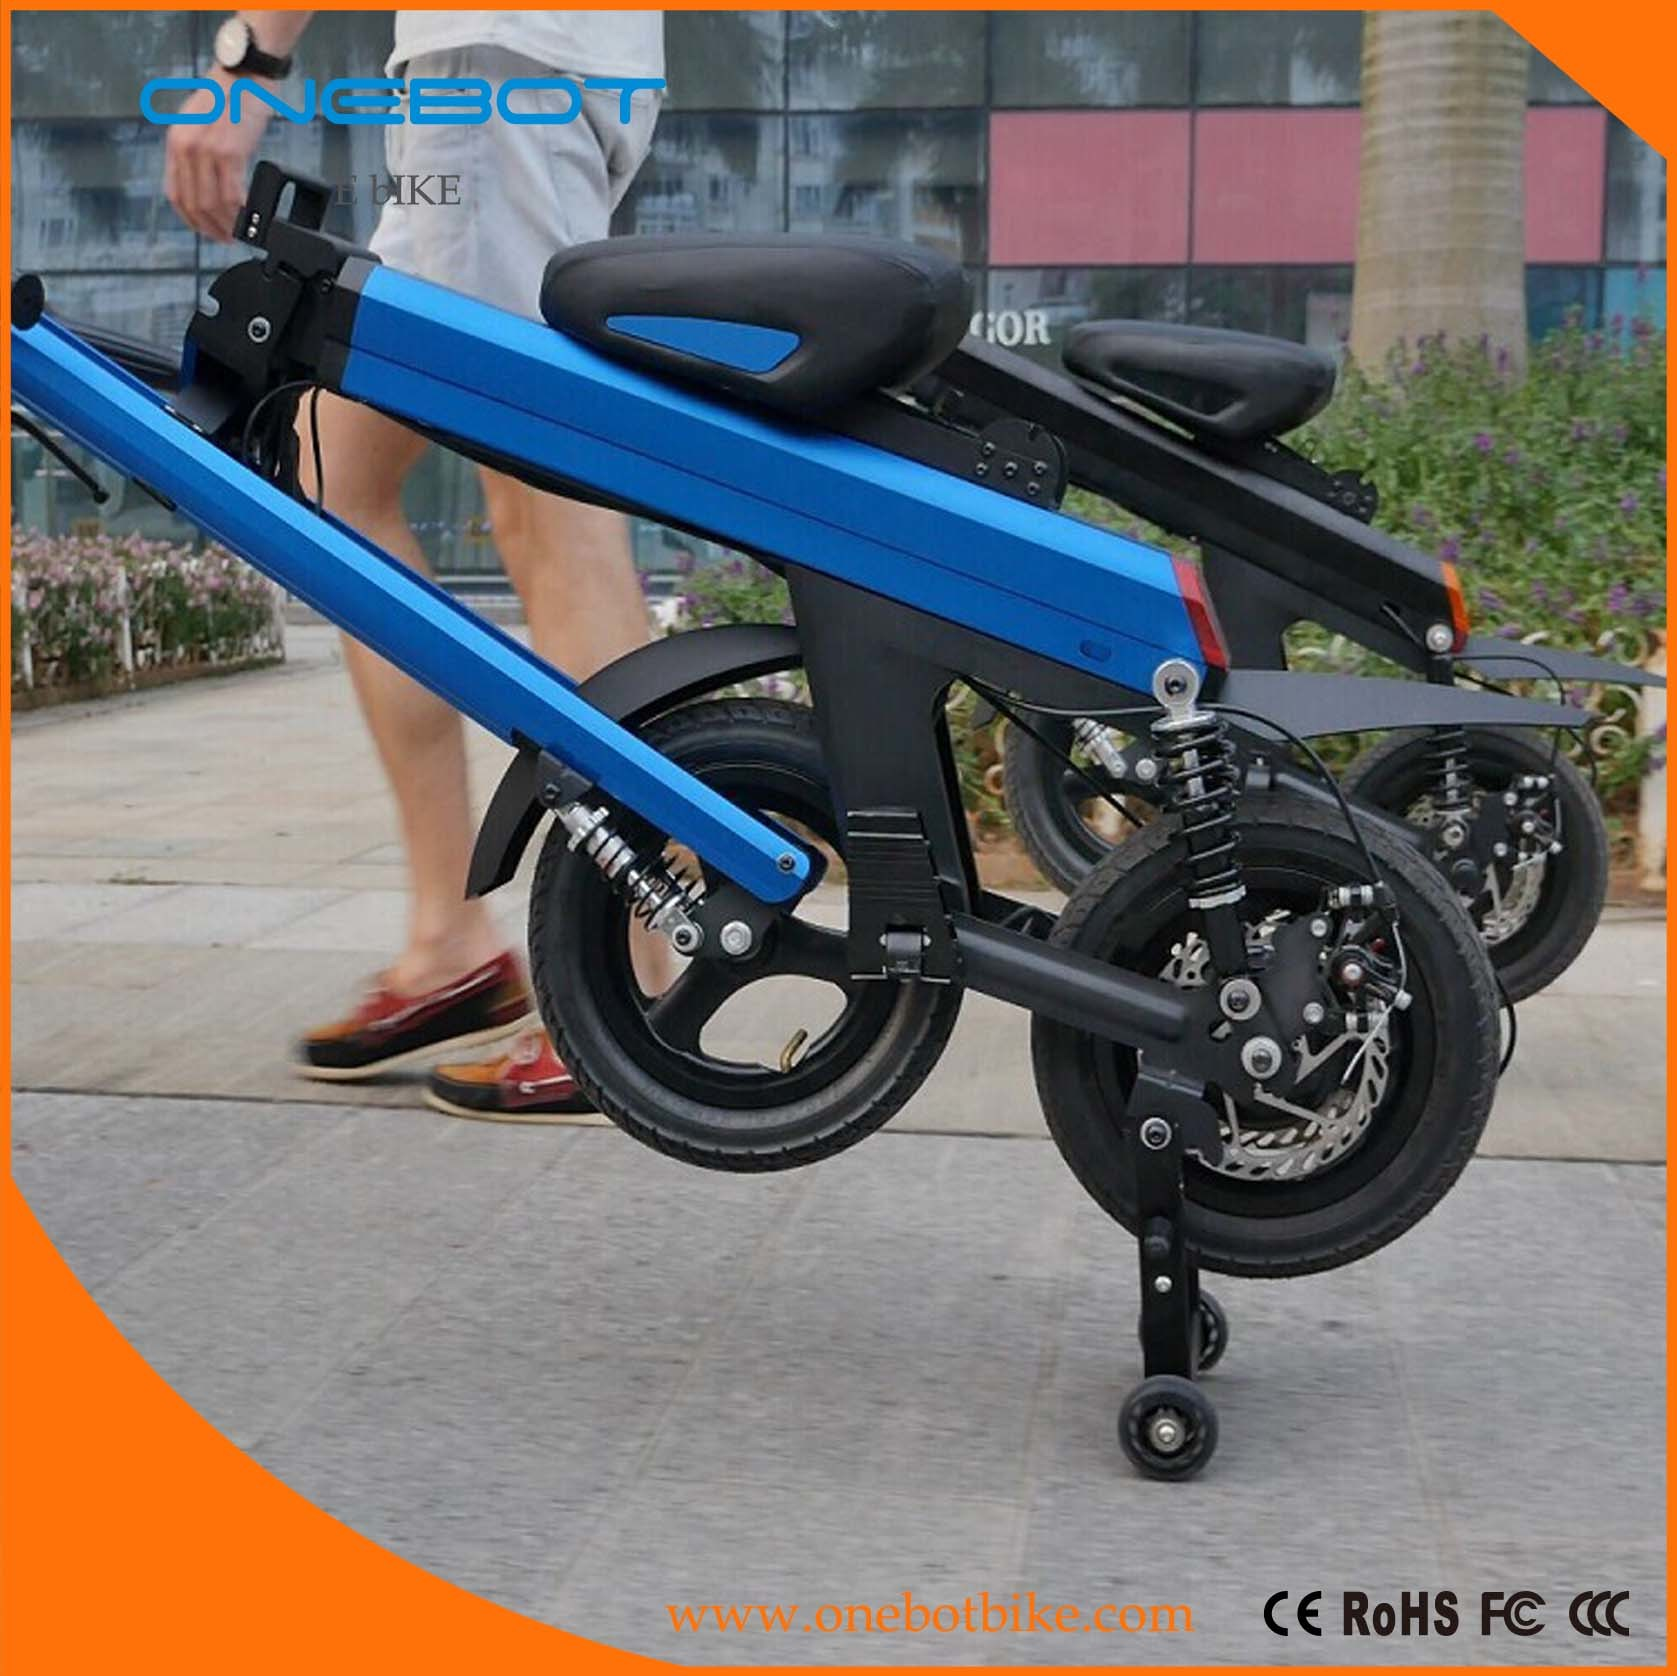 Mini Electric Scooter Bicycle Foldable with 500W Motor and Panasonic Battery